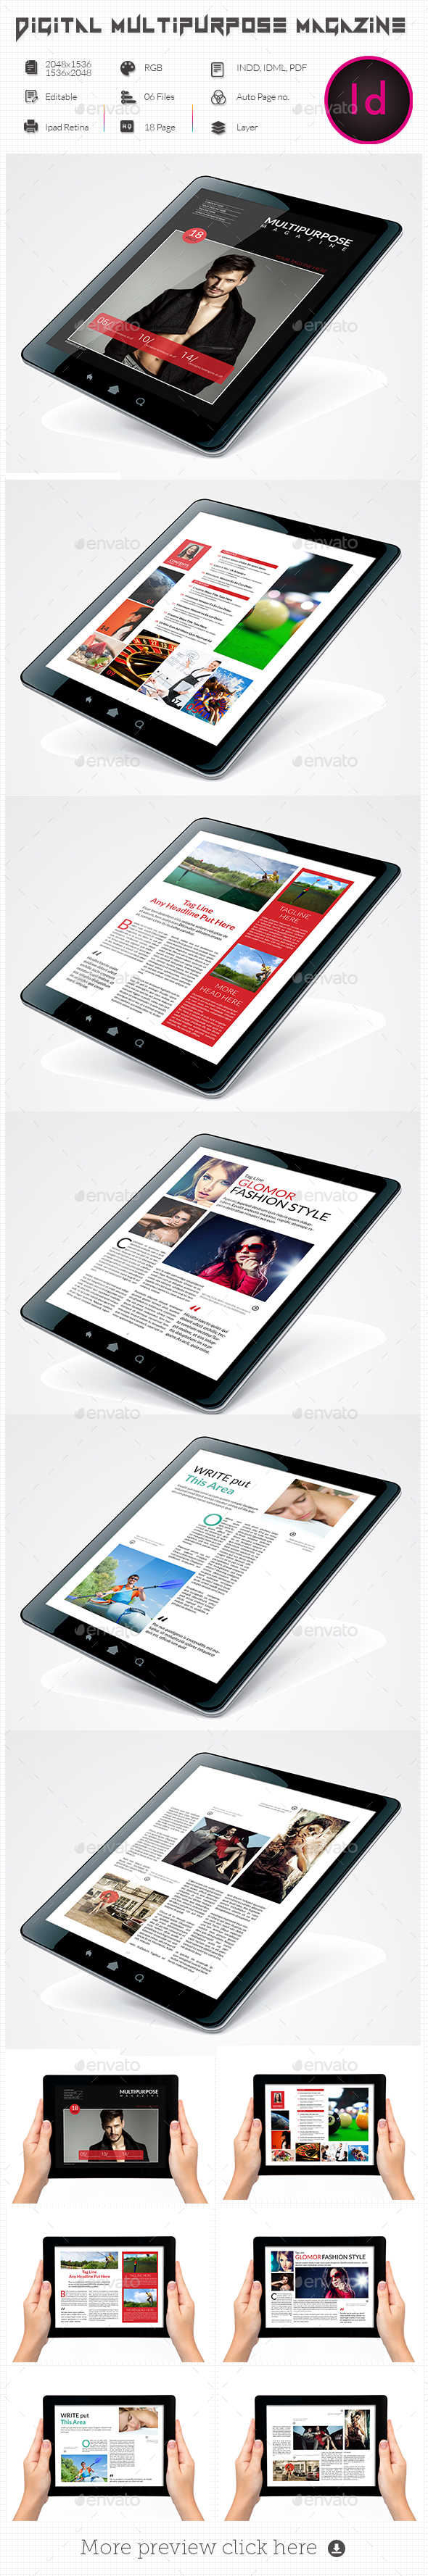 Multpurpose E-Magazine - ePublishing